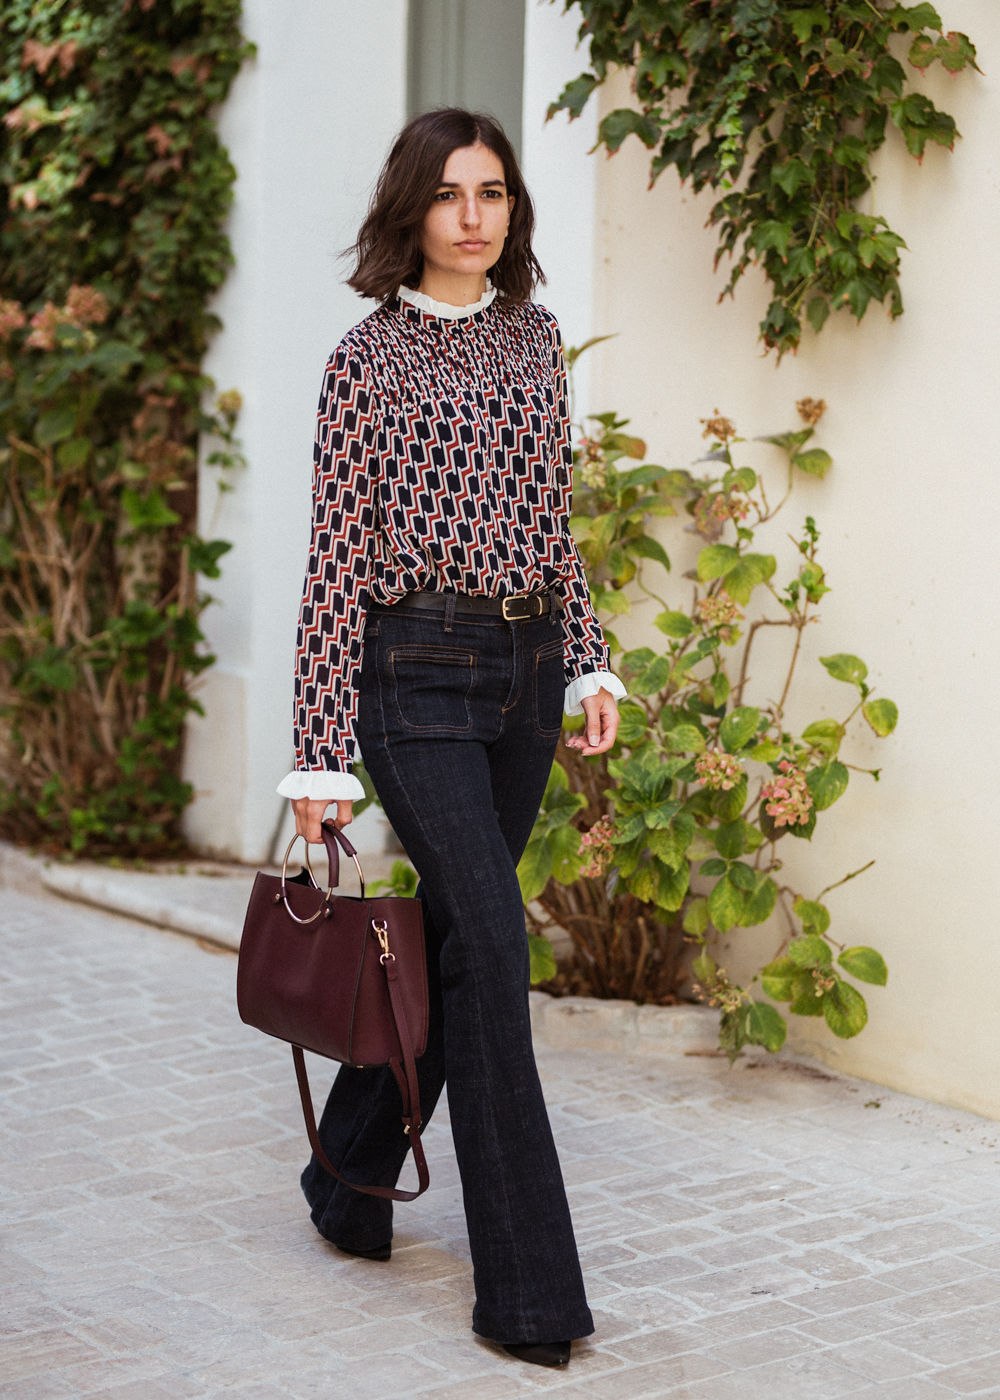 Foolproof classic outfit Retro blouse and flare jeans | Aria Di Bari